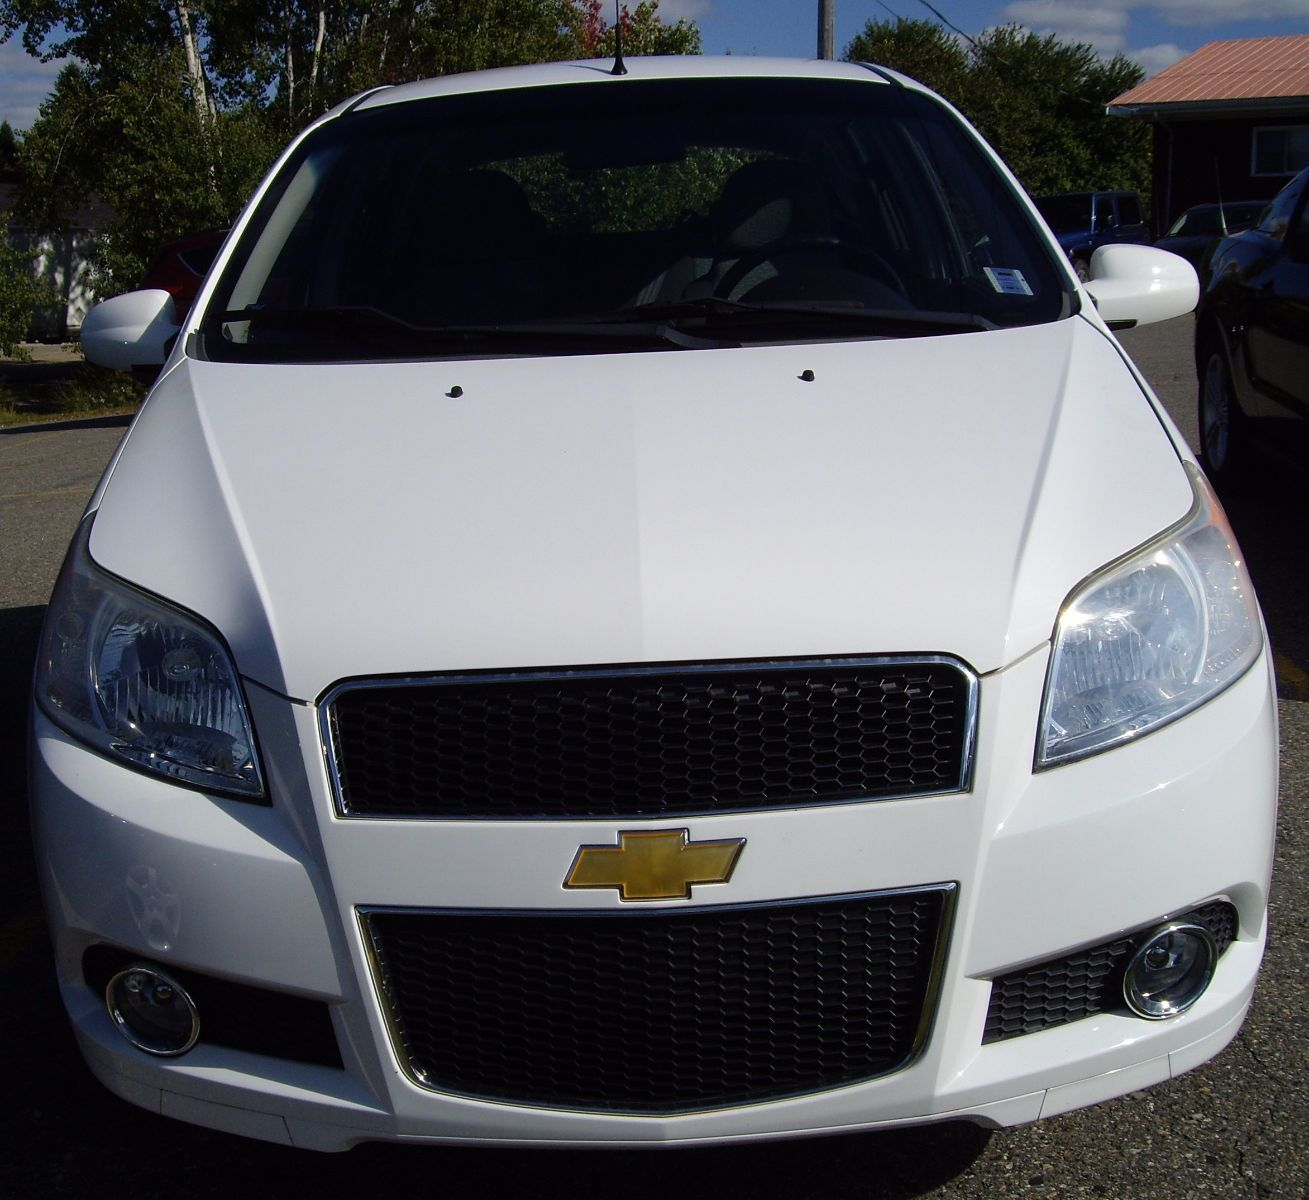 used 2009 chevrolet aveo in new germany used inventory. Black Bedroom Furniture Sets. Home Design Ideas